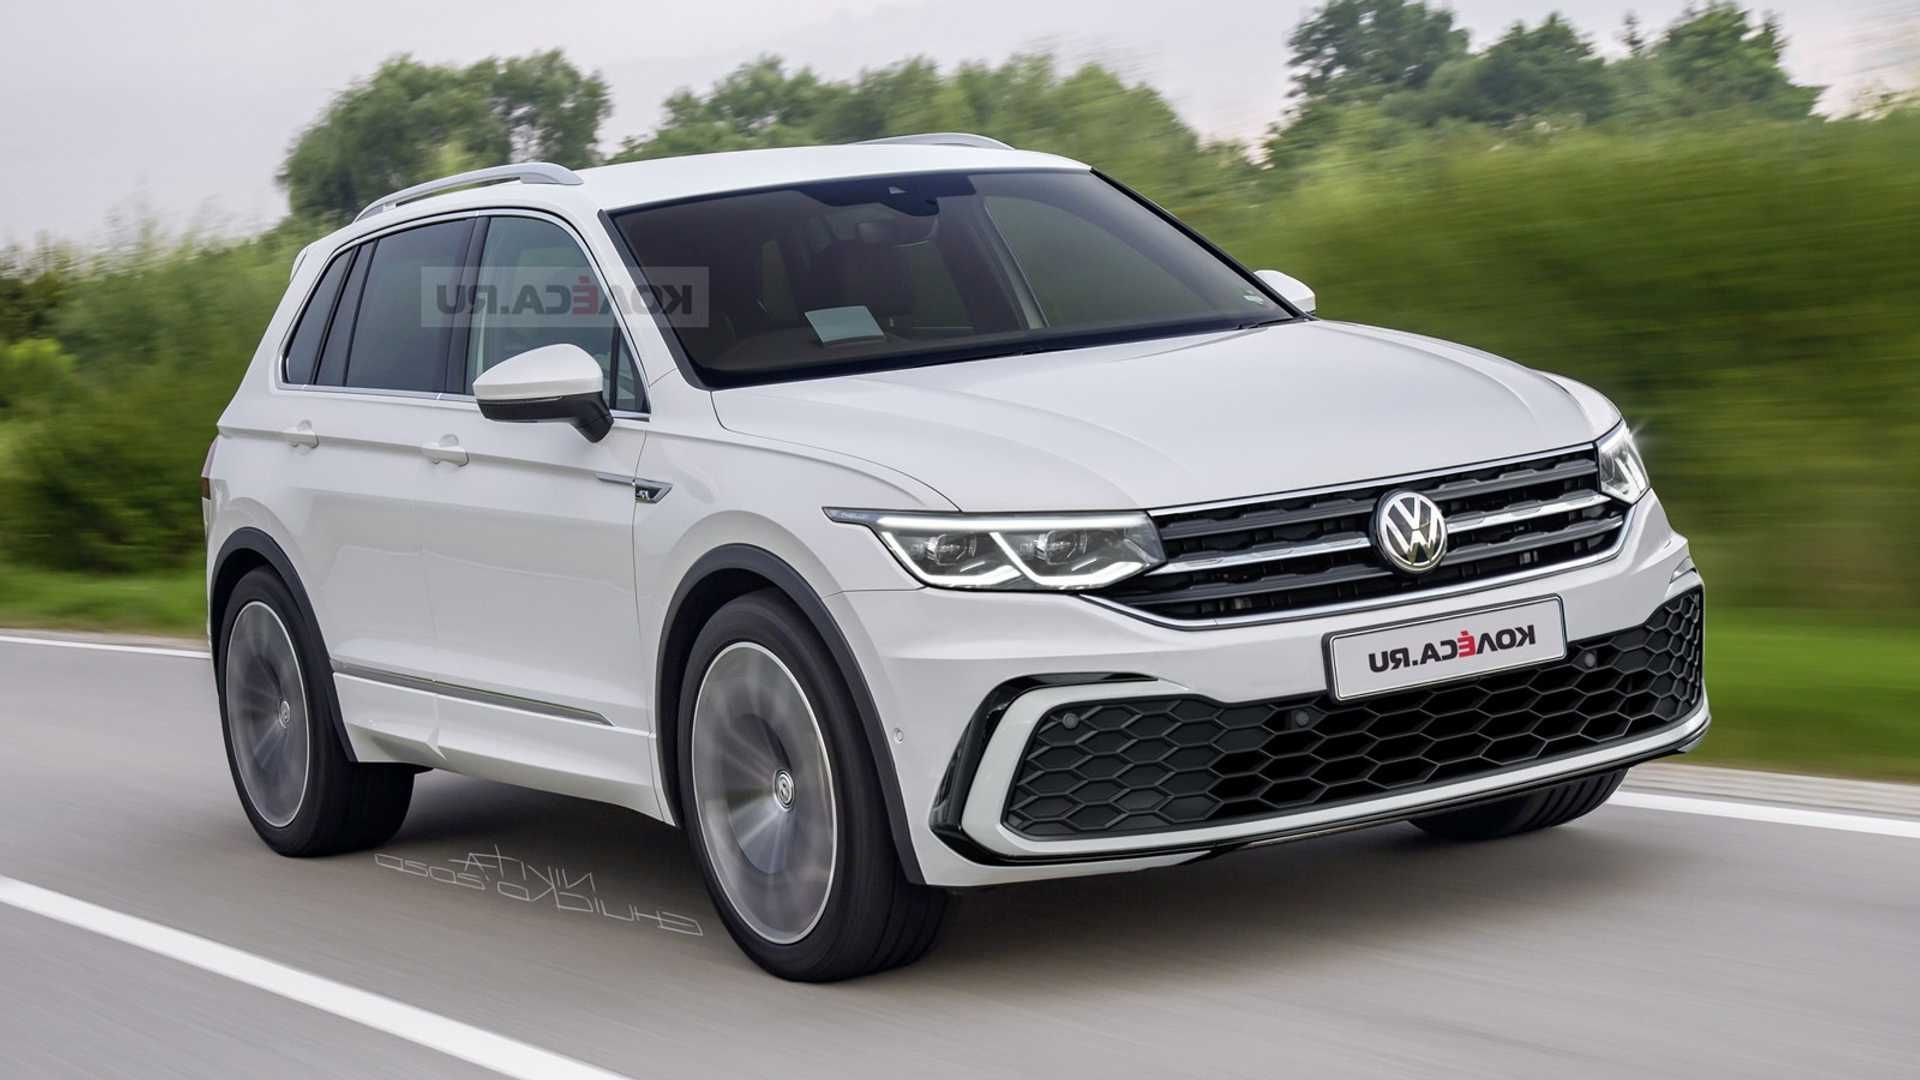 The 2021 Volkswagen Tiguan R Suv That May Come Out This Year